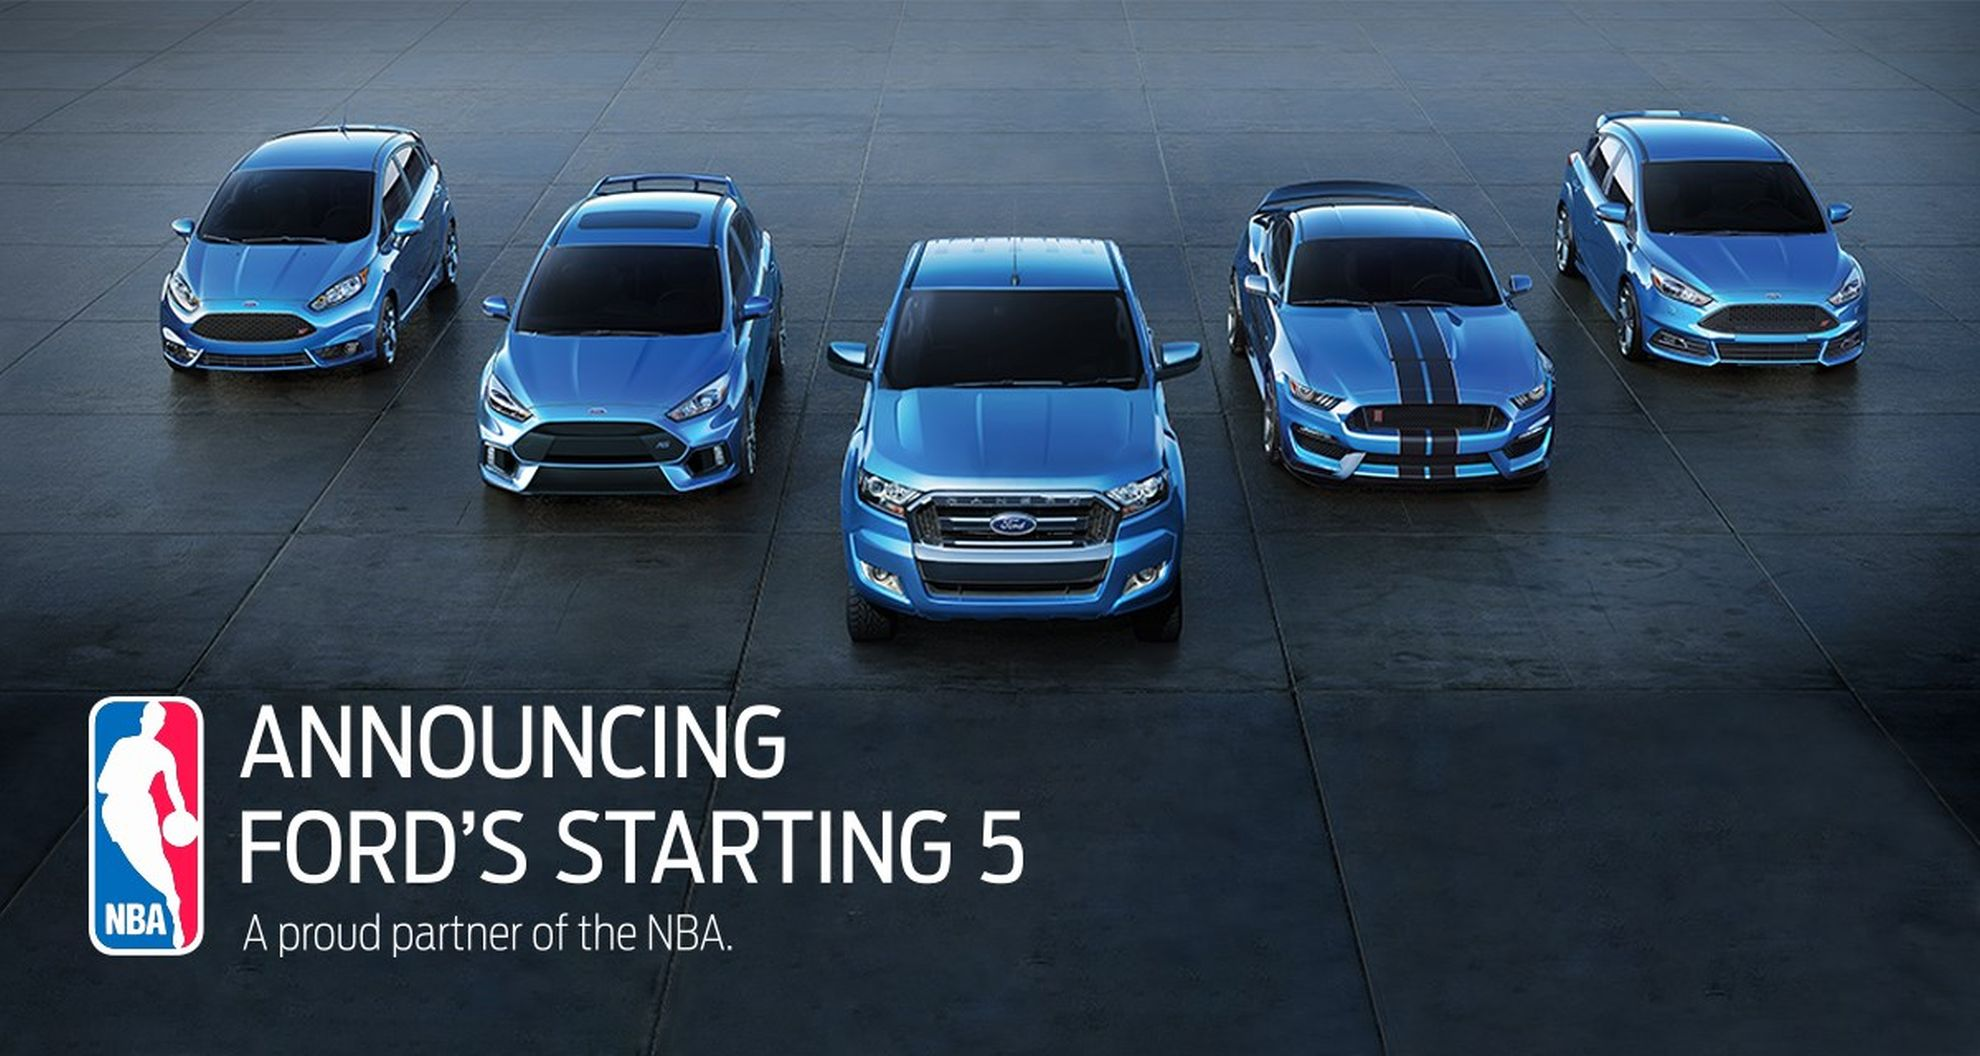 ford-nba-partnership